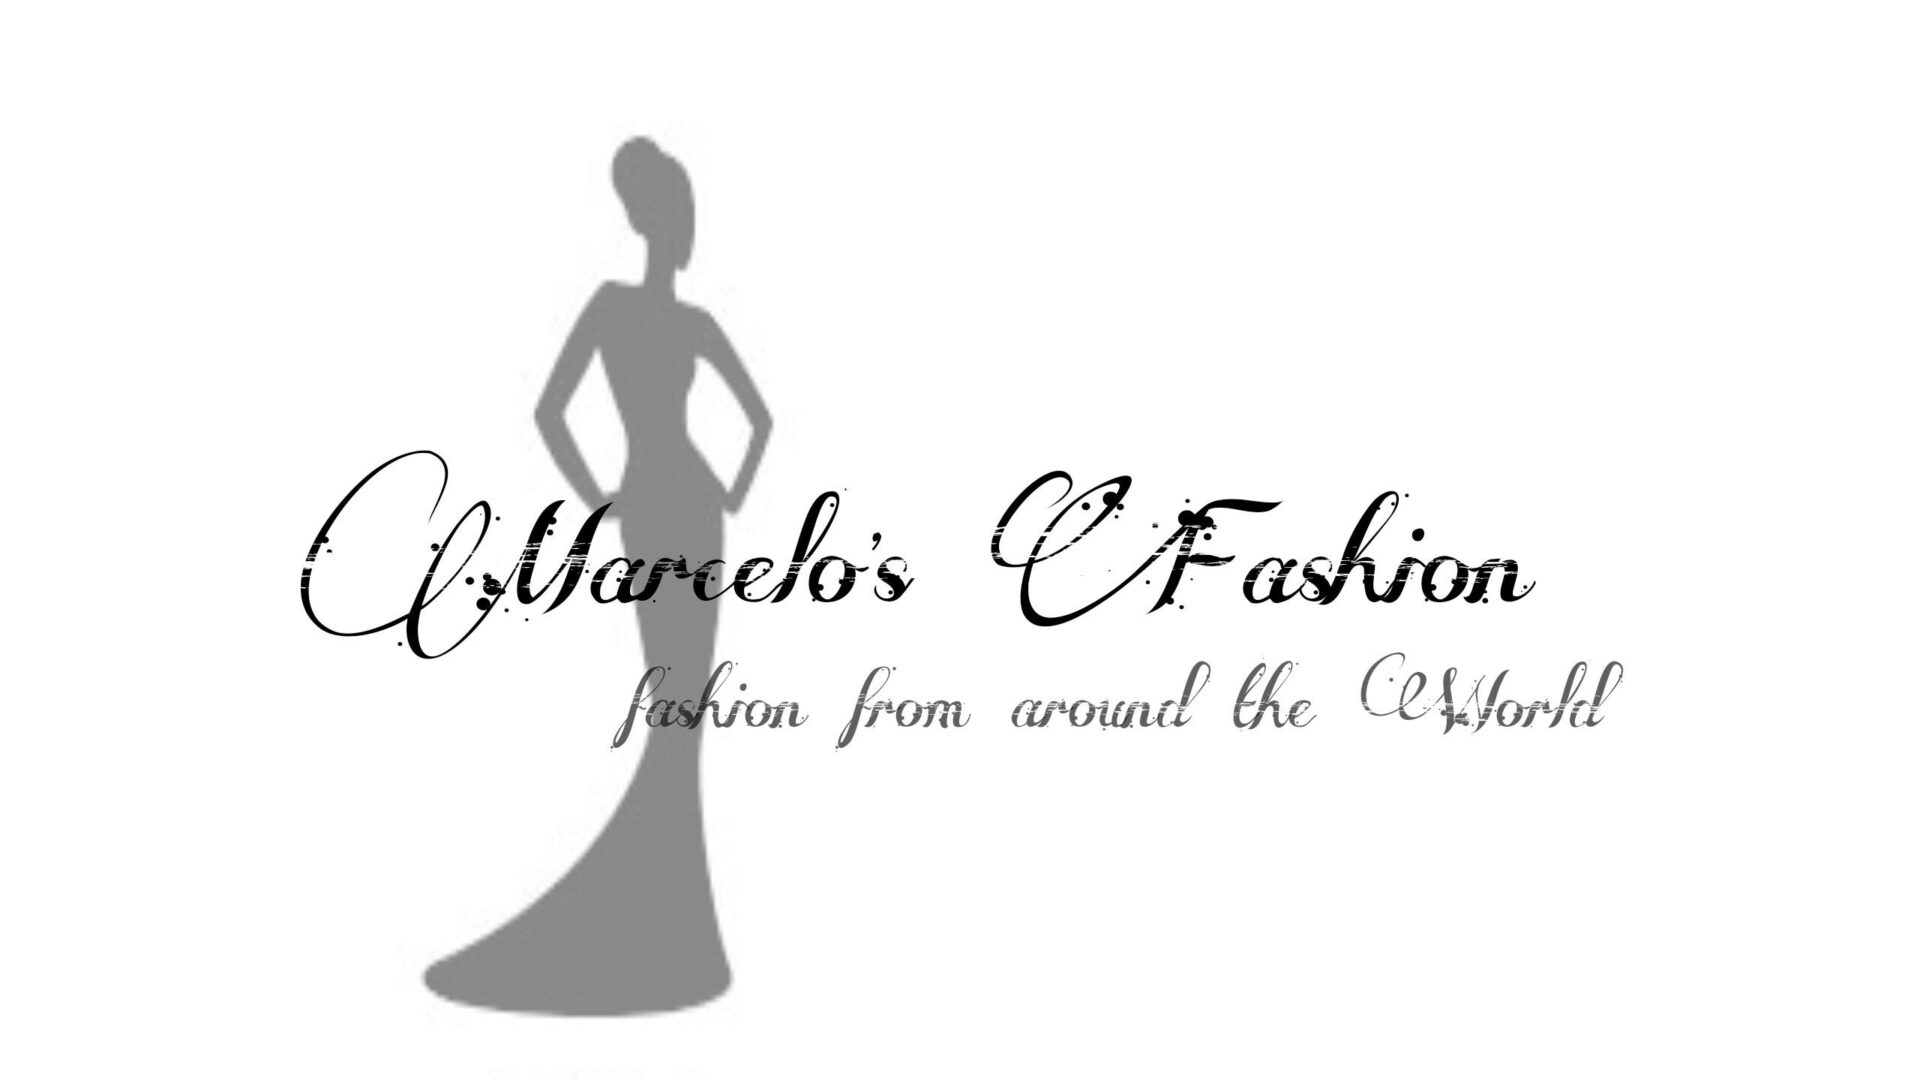 https://missglobal.com/wp-content/uploads/2018/05/Marcelo-Fashion-Logo.jpg